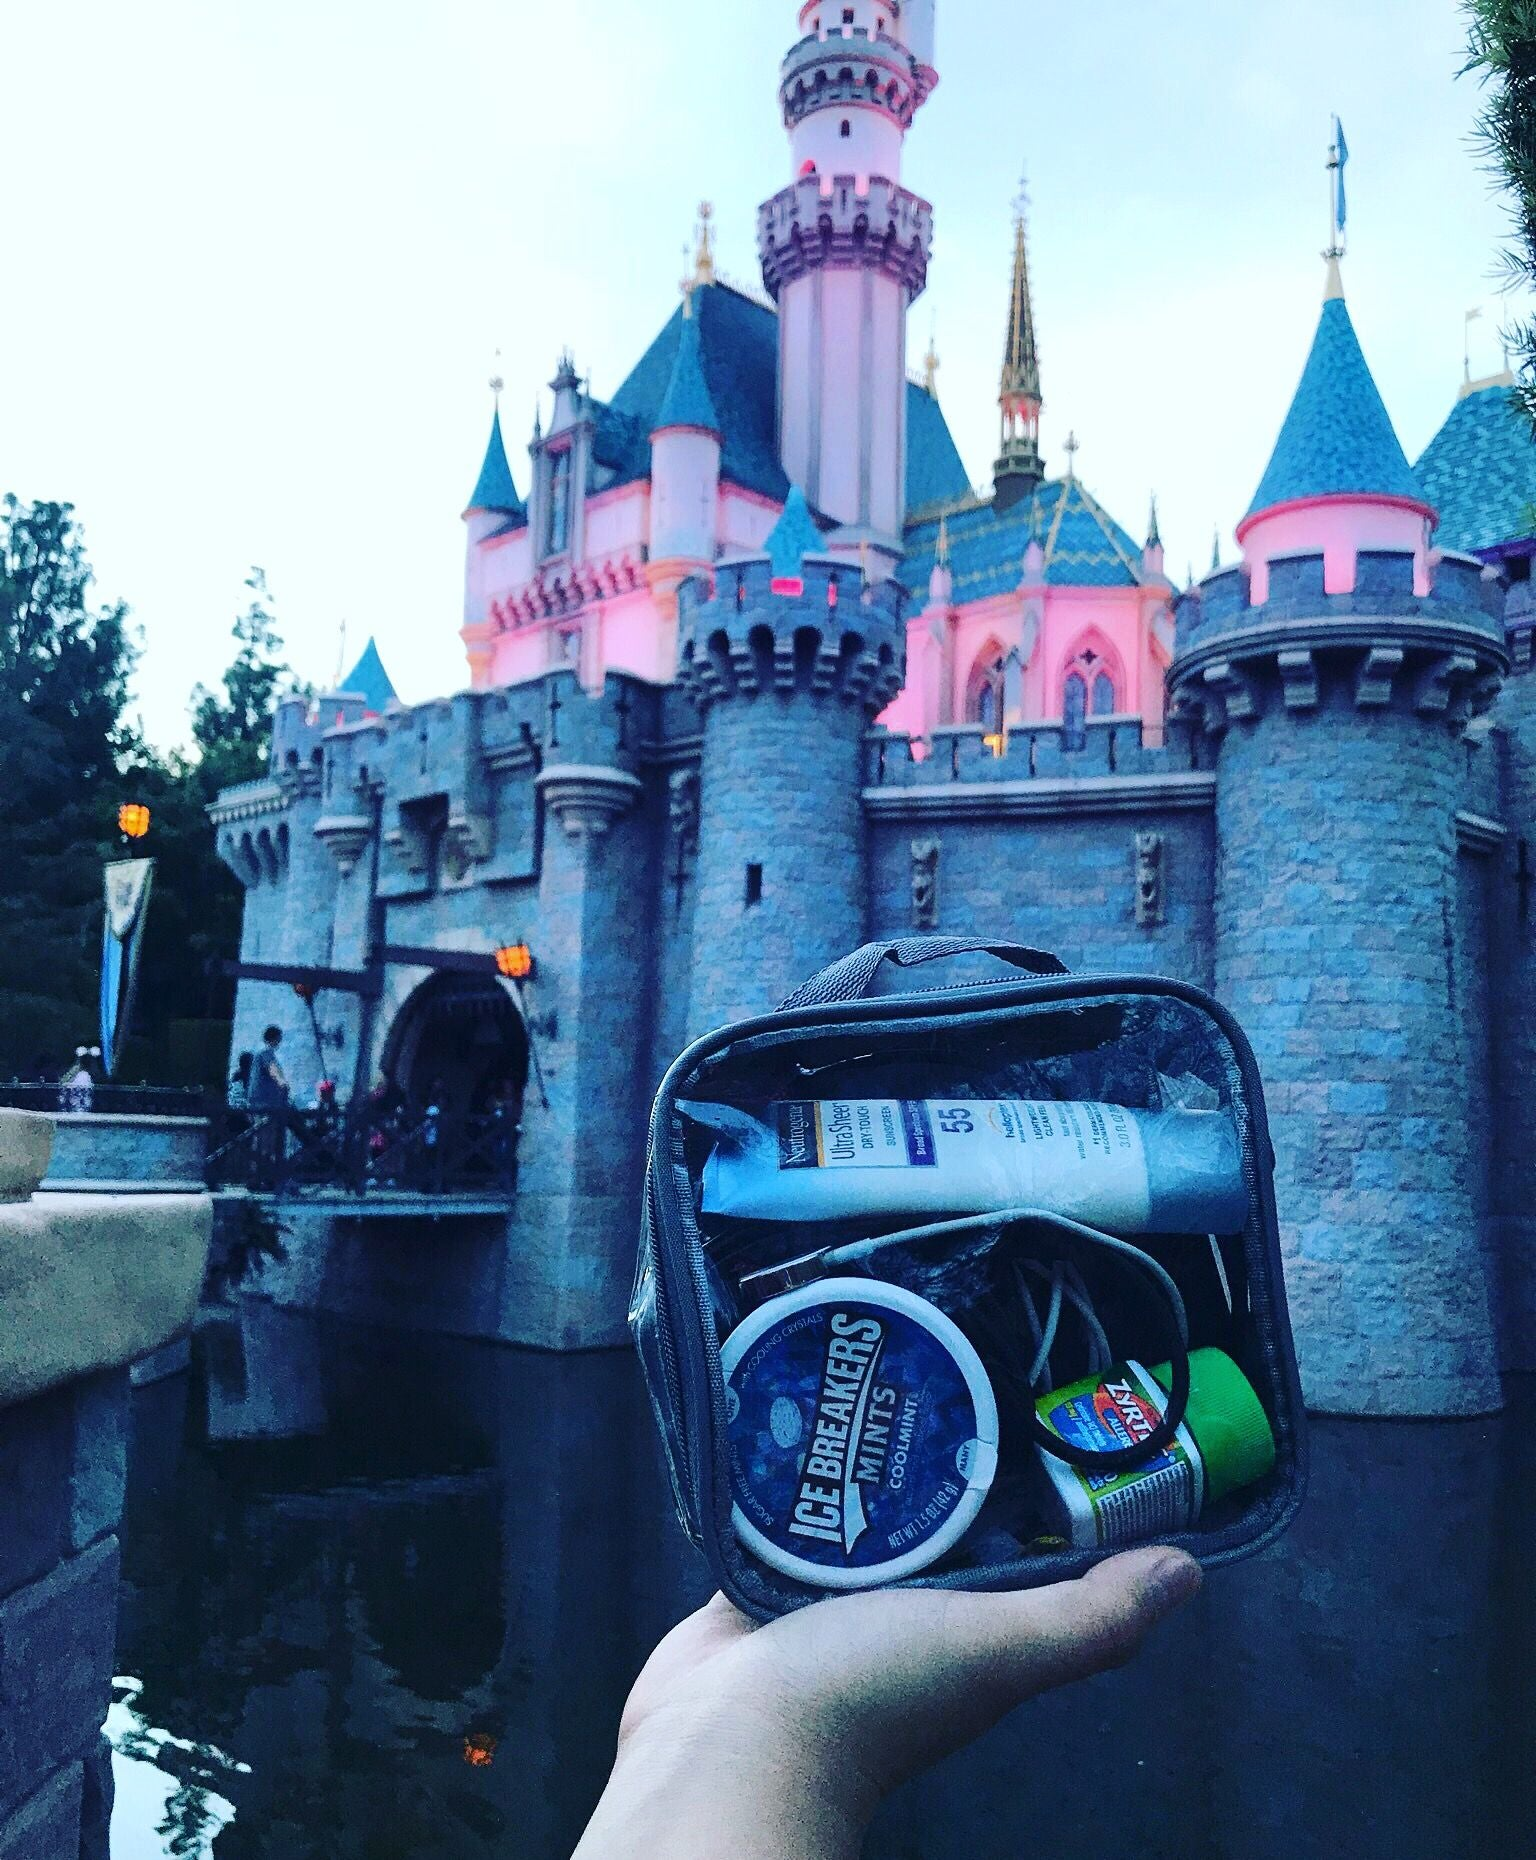 Disneyland essentials in an extra small cube